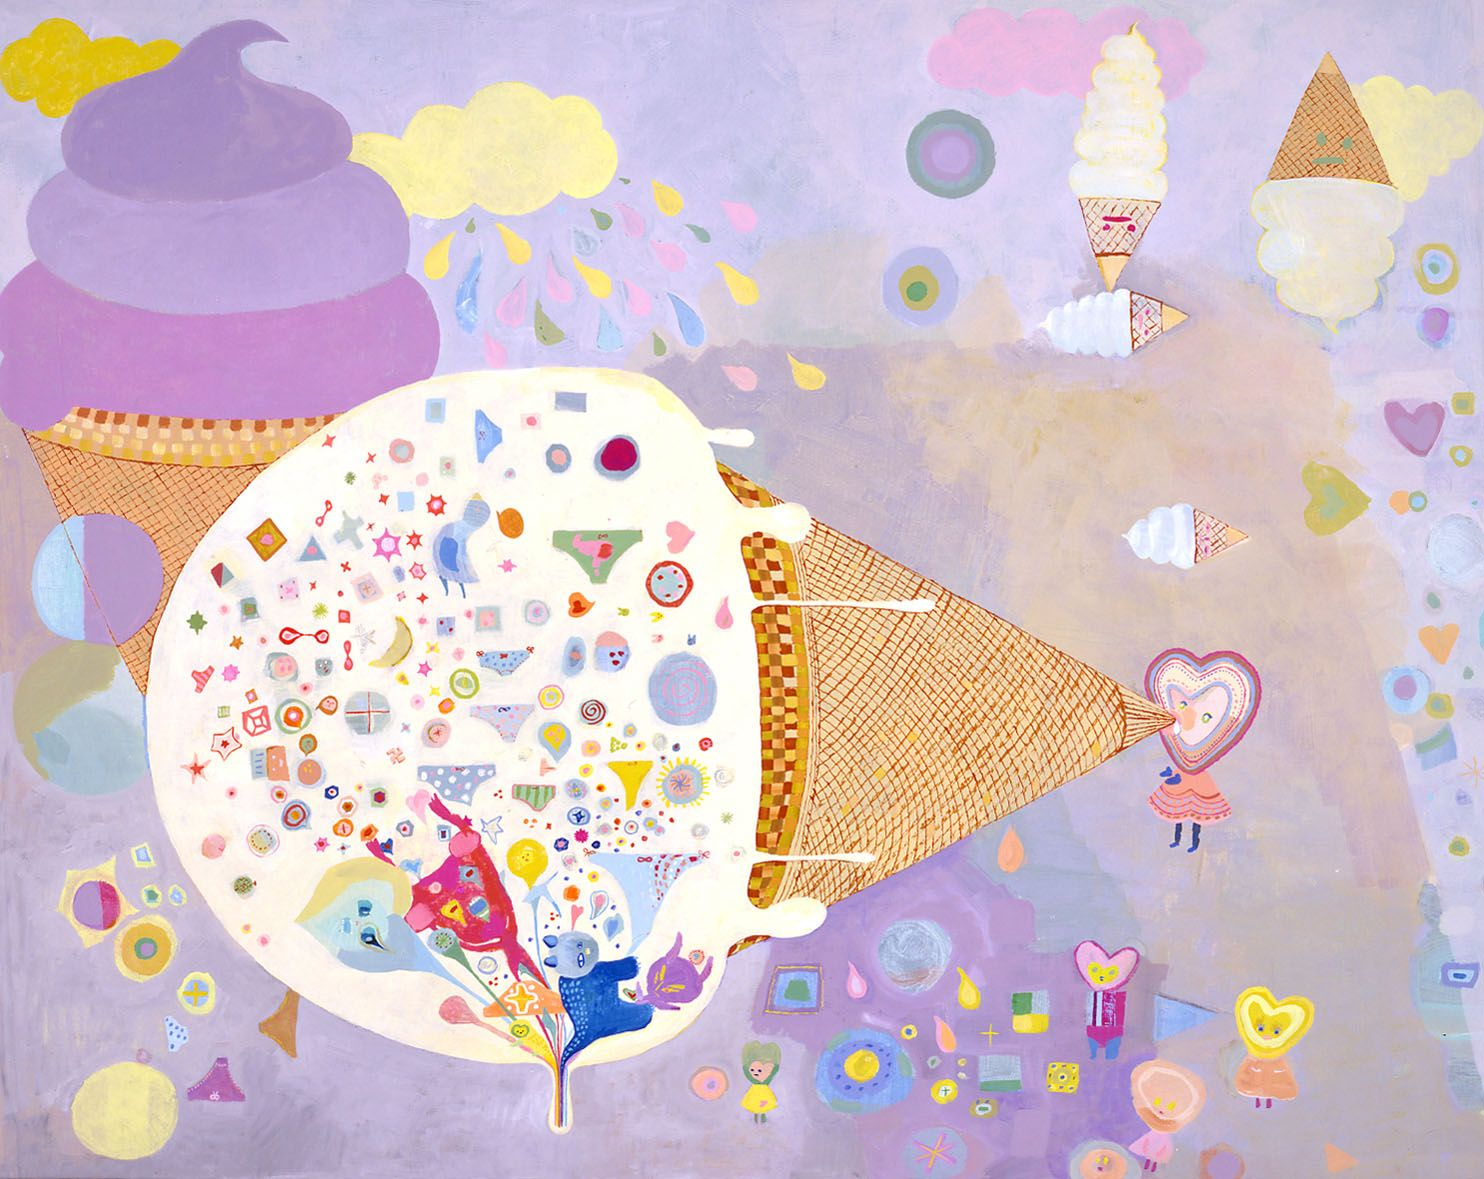 ice cream cone with purple background by chinatsu ban